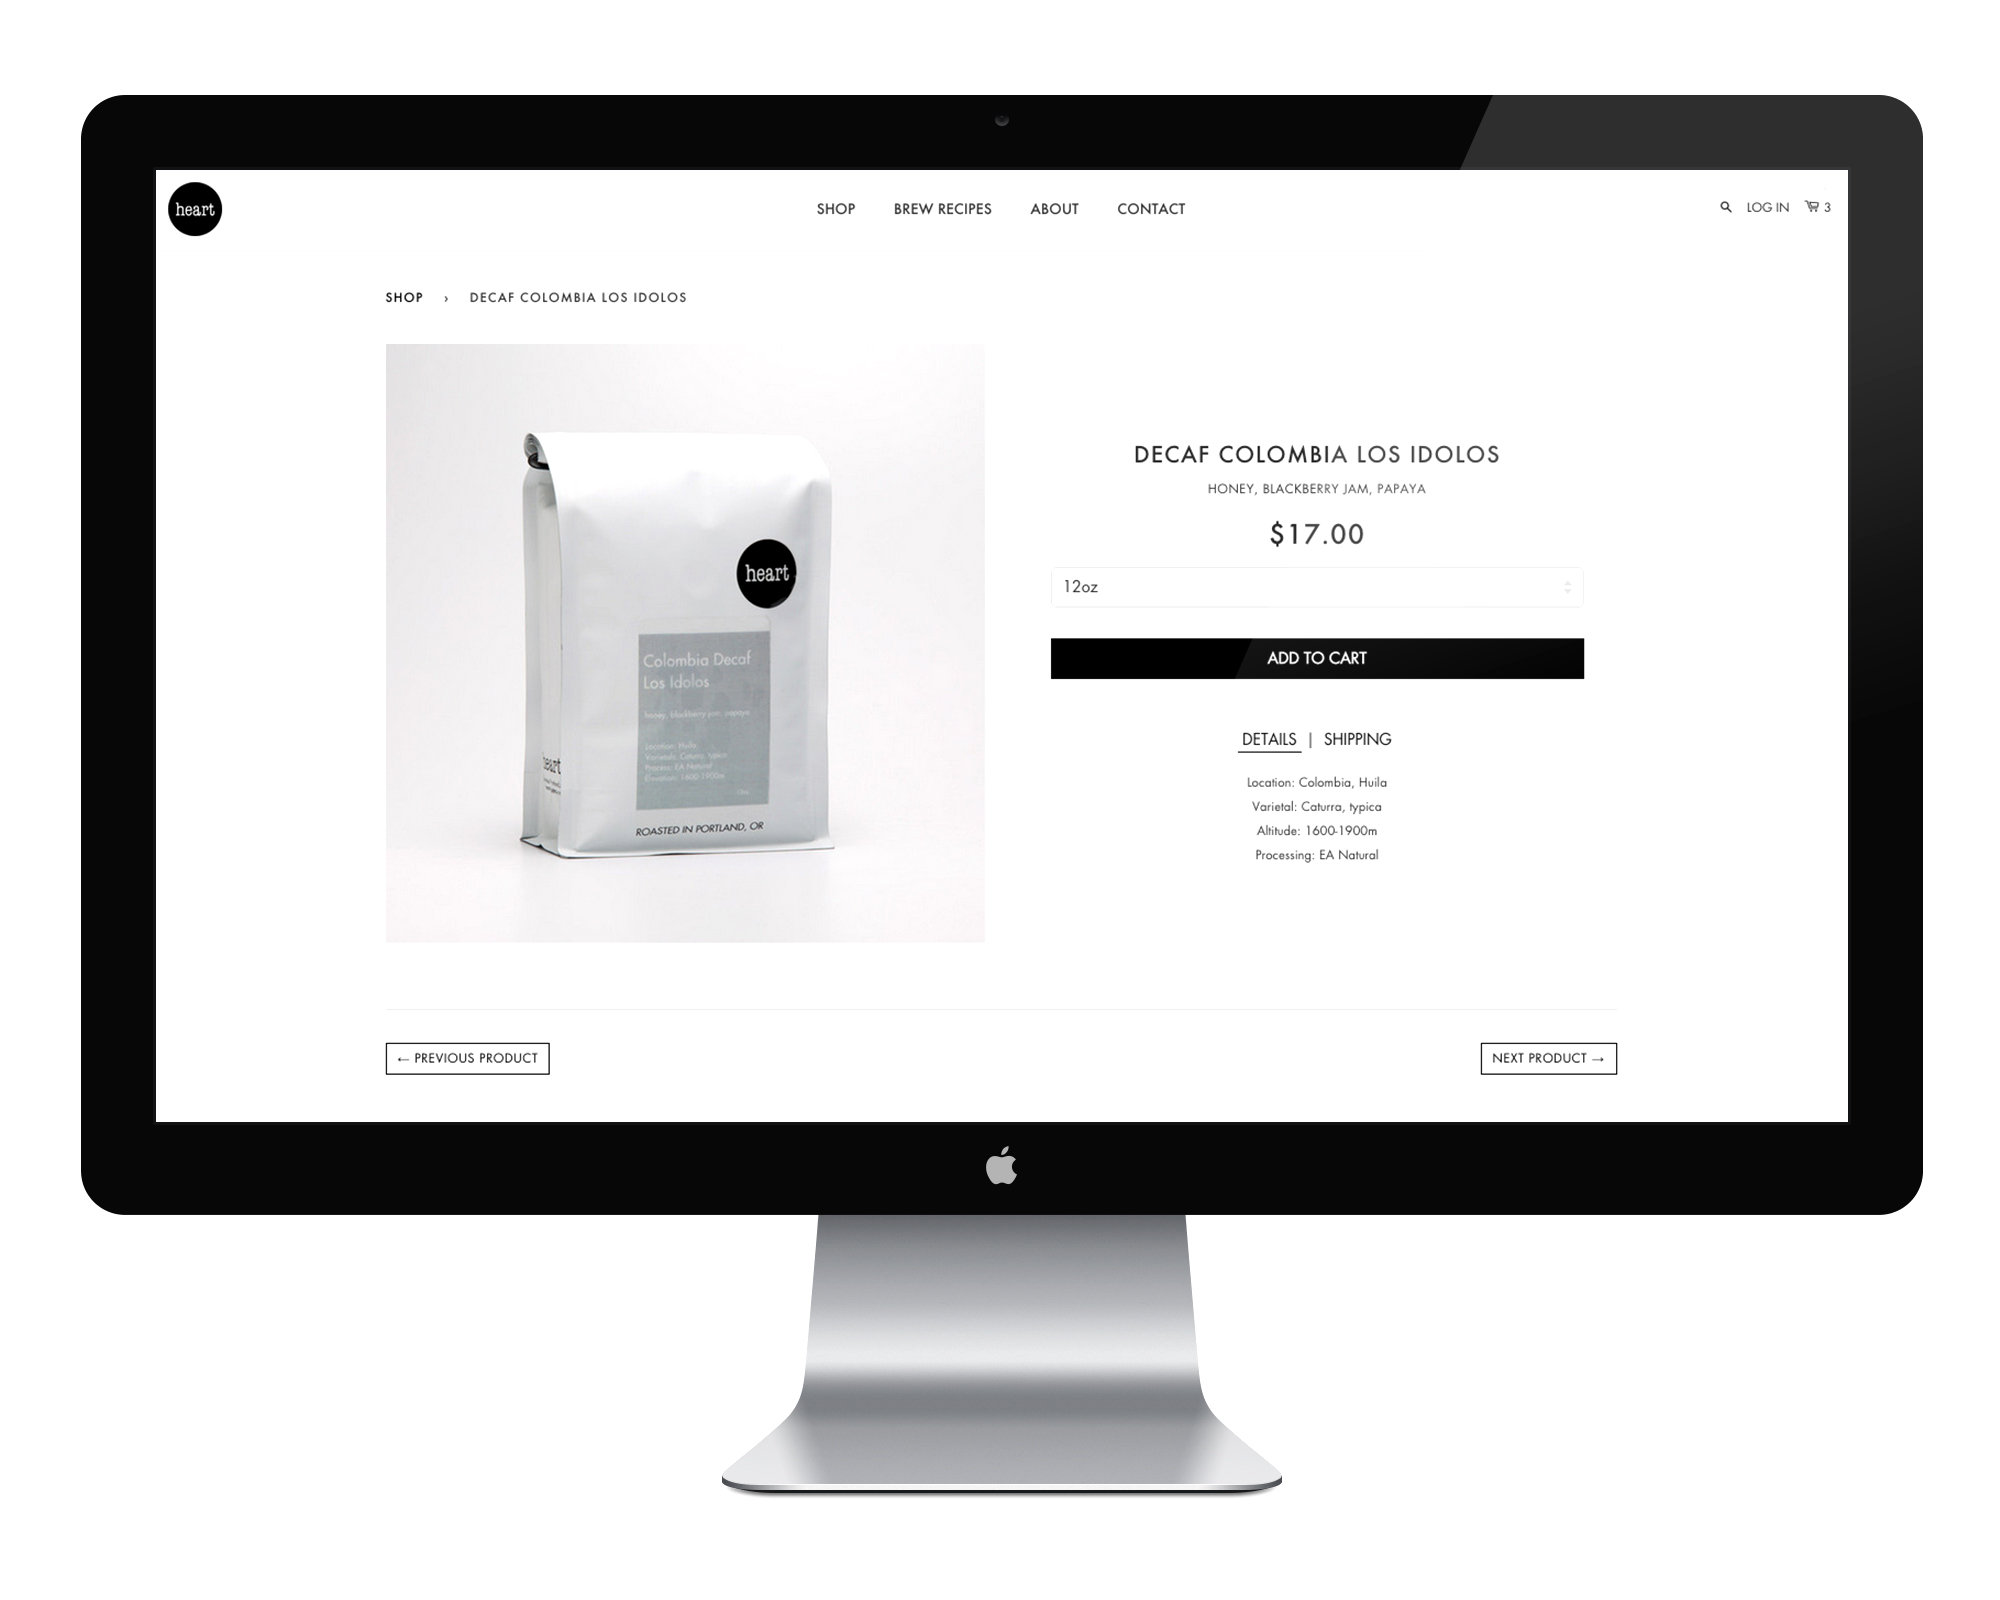 The Product Page : Keeping it simple byputting the most important information near the top.